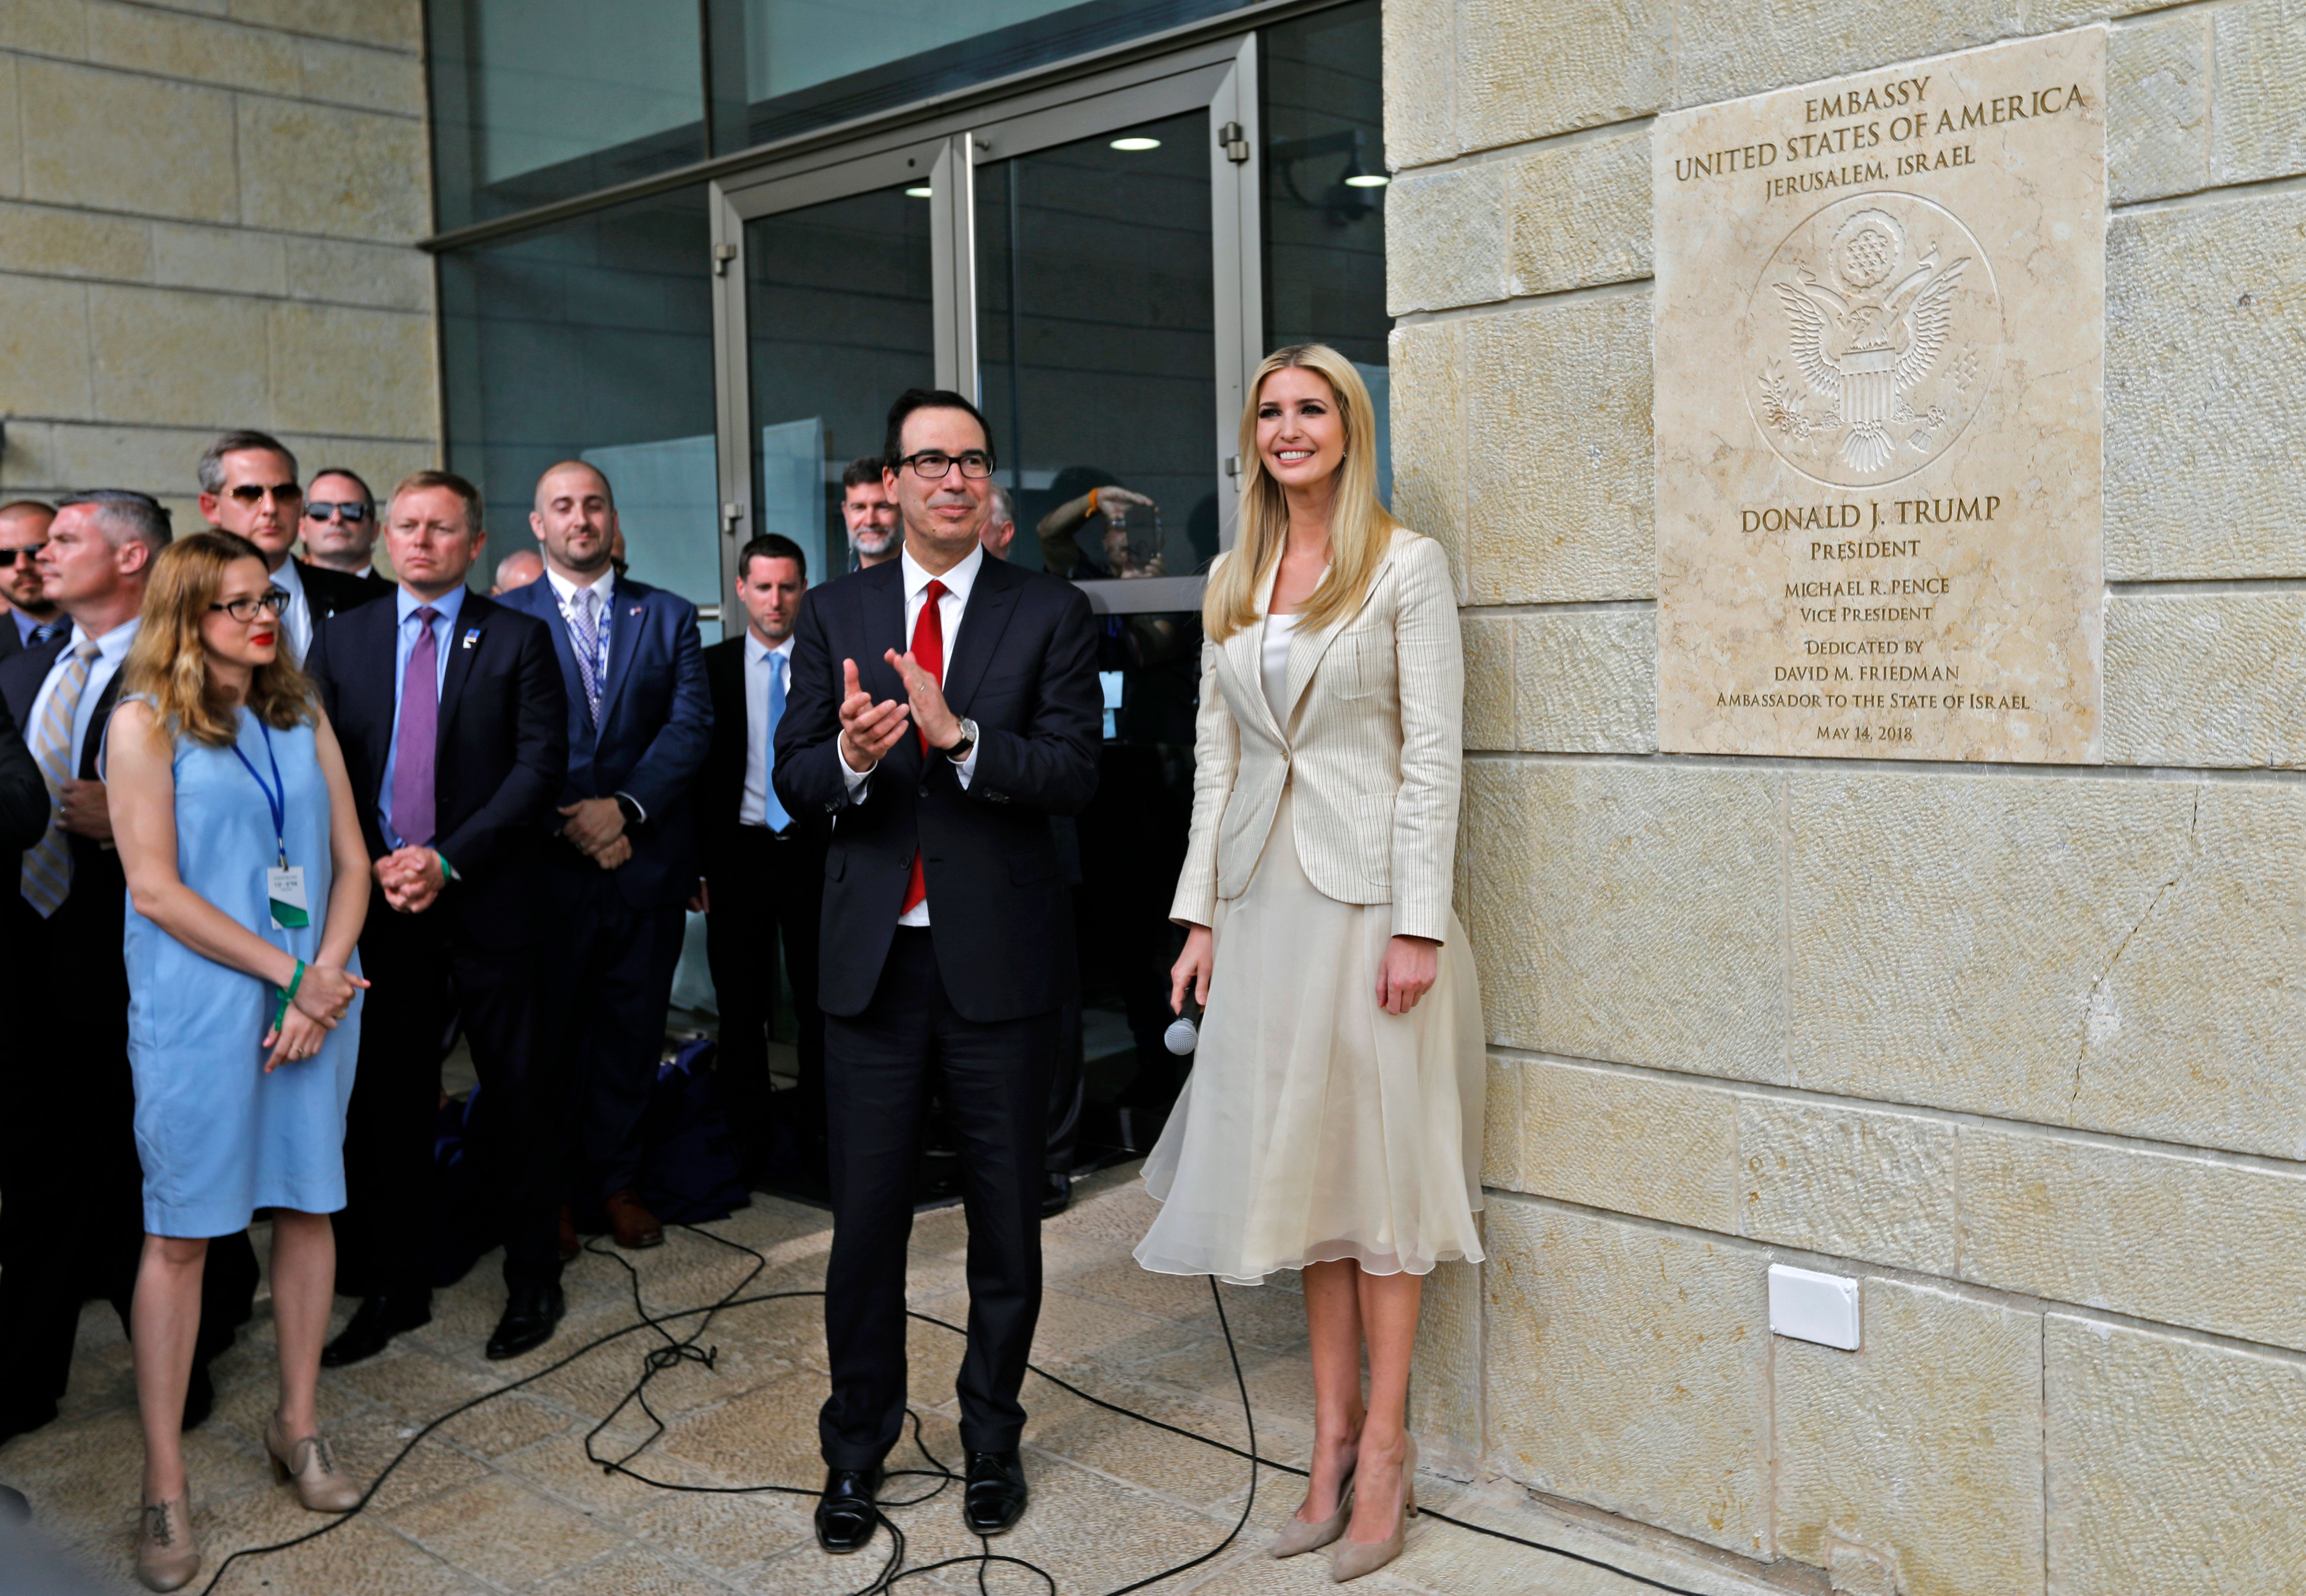 US Treasury Secretary Steve Mnuchin (L) and US President's daughter Ivanka Trump stand next to an inauguration plaque during the opening of the US embassy in Jerusalem on May 14, 2018. - The United States moved its embassy in Israel to Jerusalem after months of global outcry, Palestinian anger and exuberant praise from Israelis over President Donald Trump's decision tossing aside decades of precedent. (Photo by Menahem KAHANA / AFP) (Photo credit should read MENAHEM KAHANA/AFP/Getty Images)